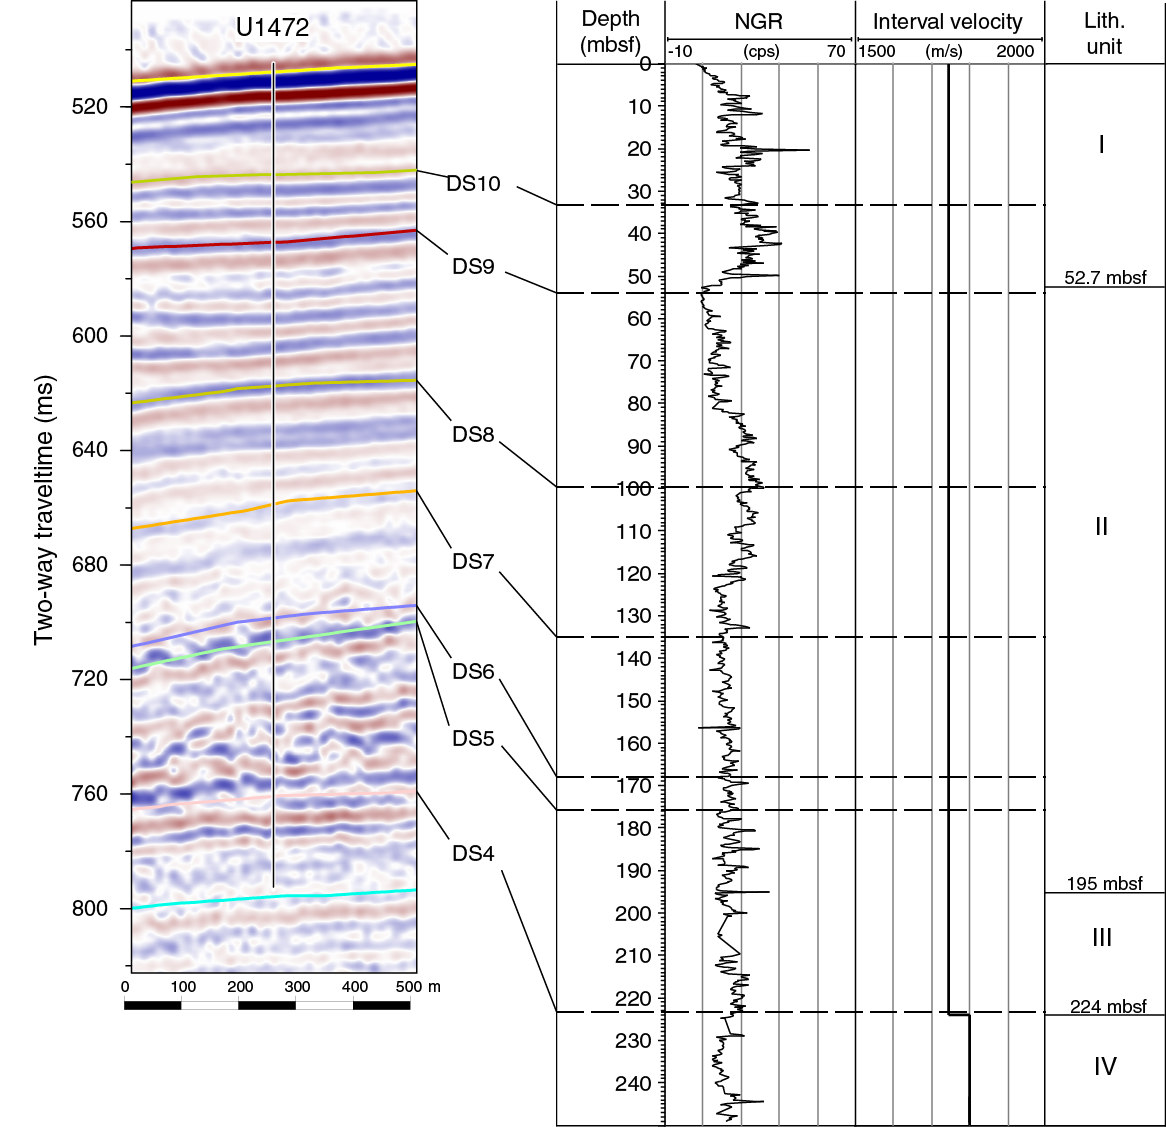 Iodp publications volume 359 expedition reports site u1472 figure nvjuhfo Image collections